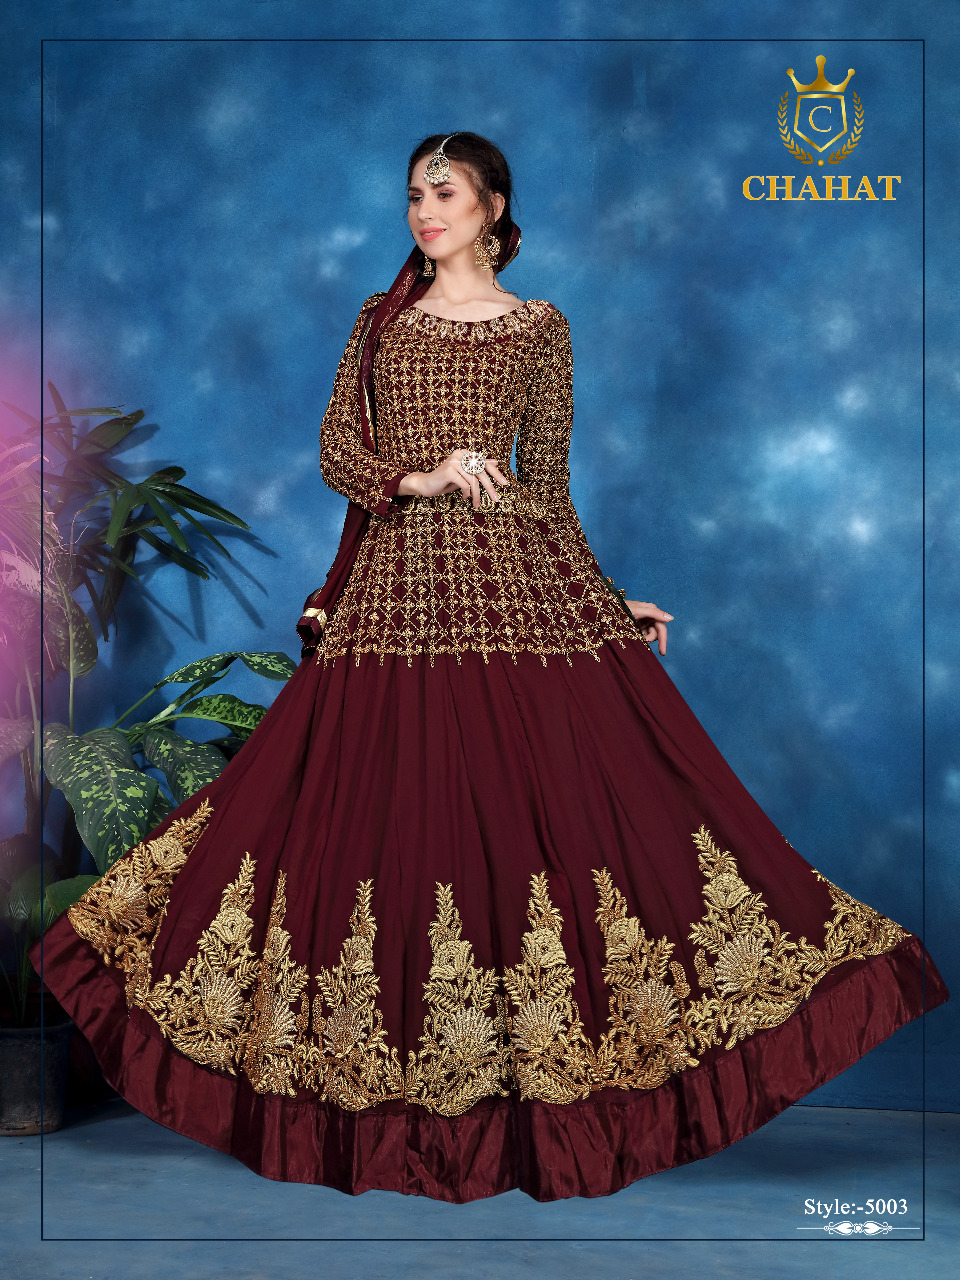 Chahat Fashion Bilal 5003